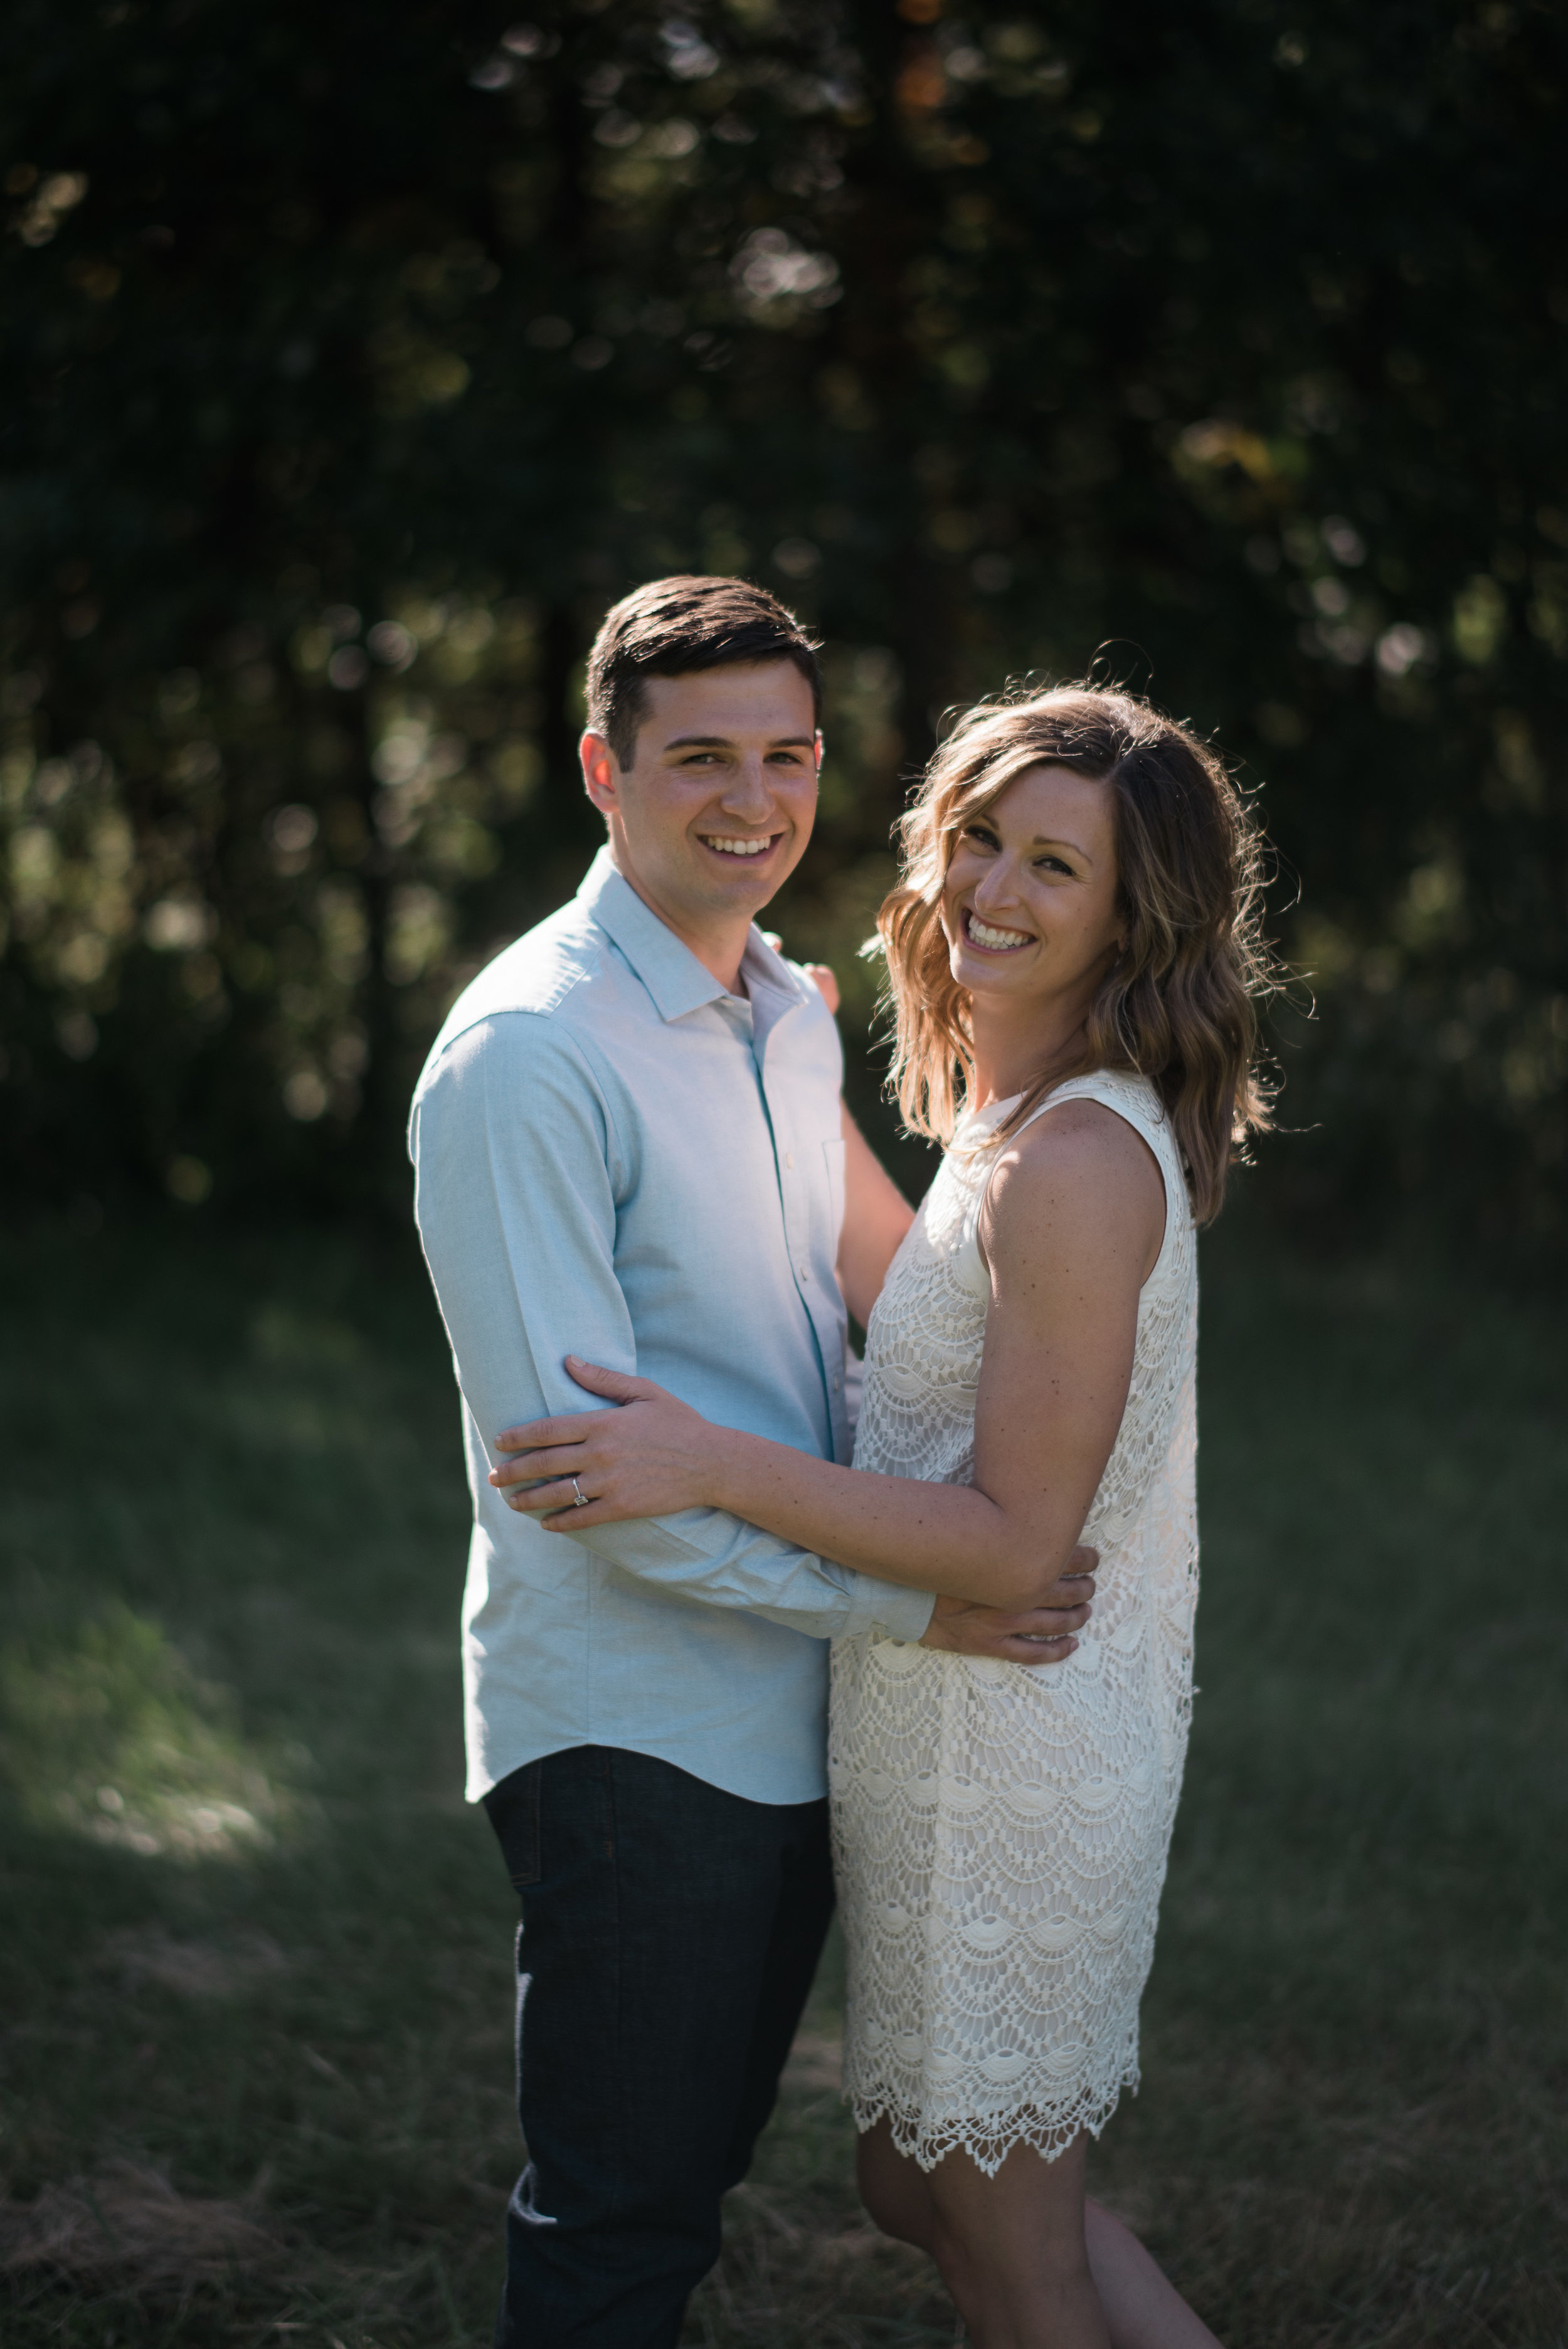 Wooded forest engagement portrait session in Kansas City.